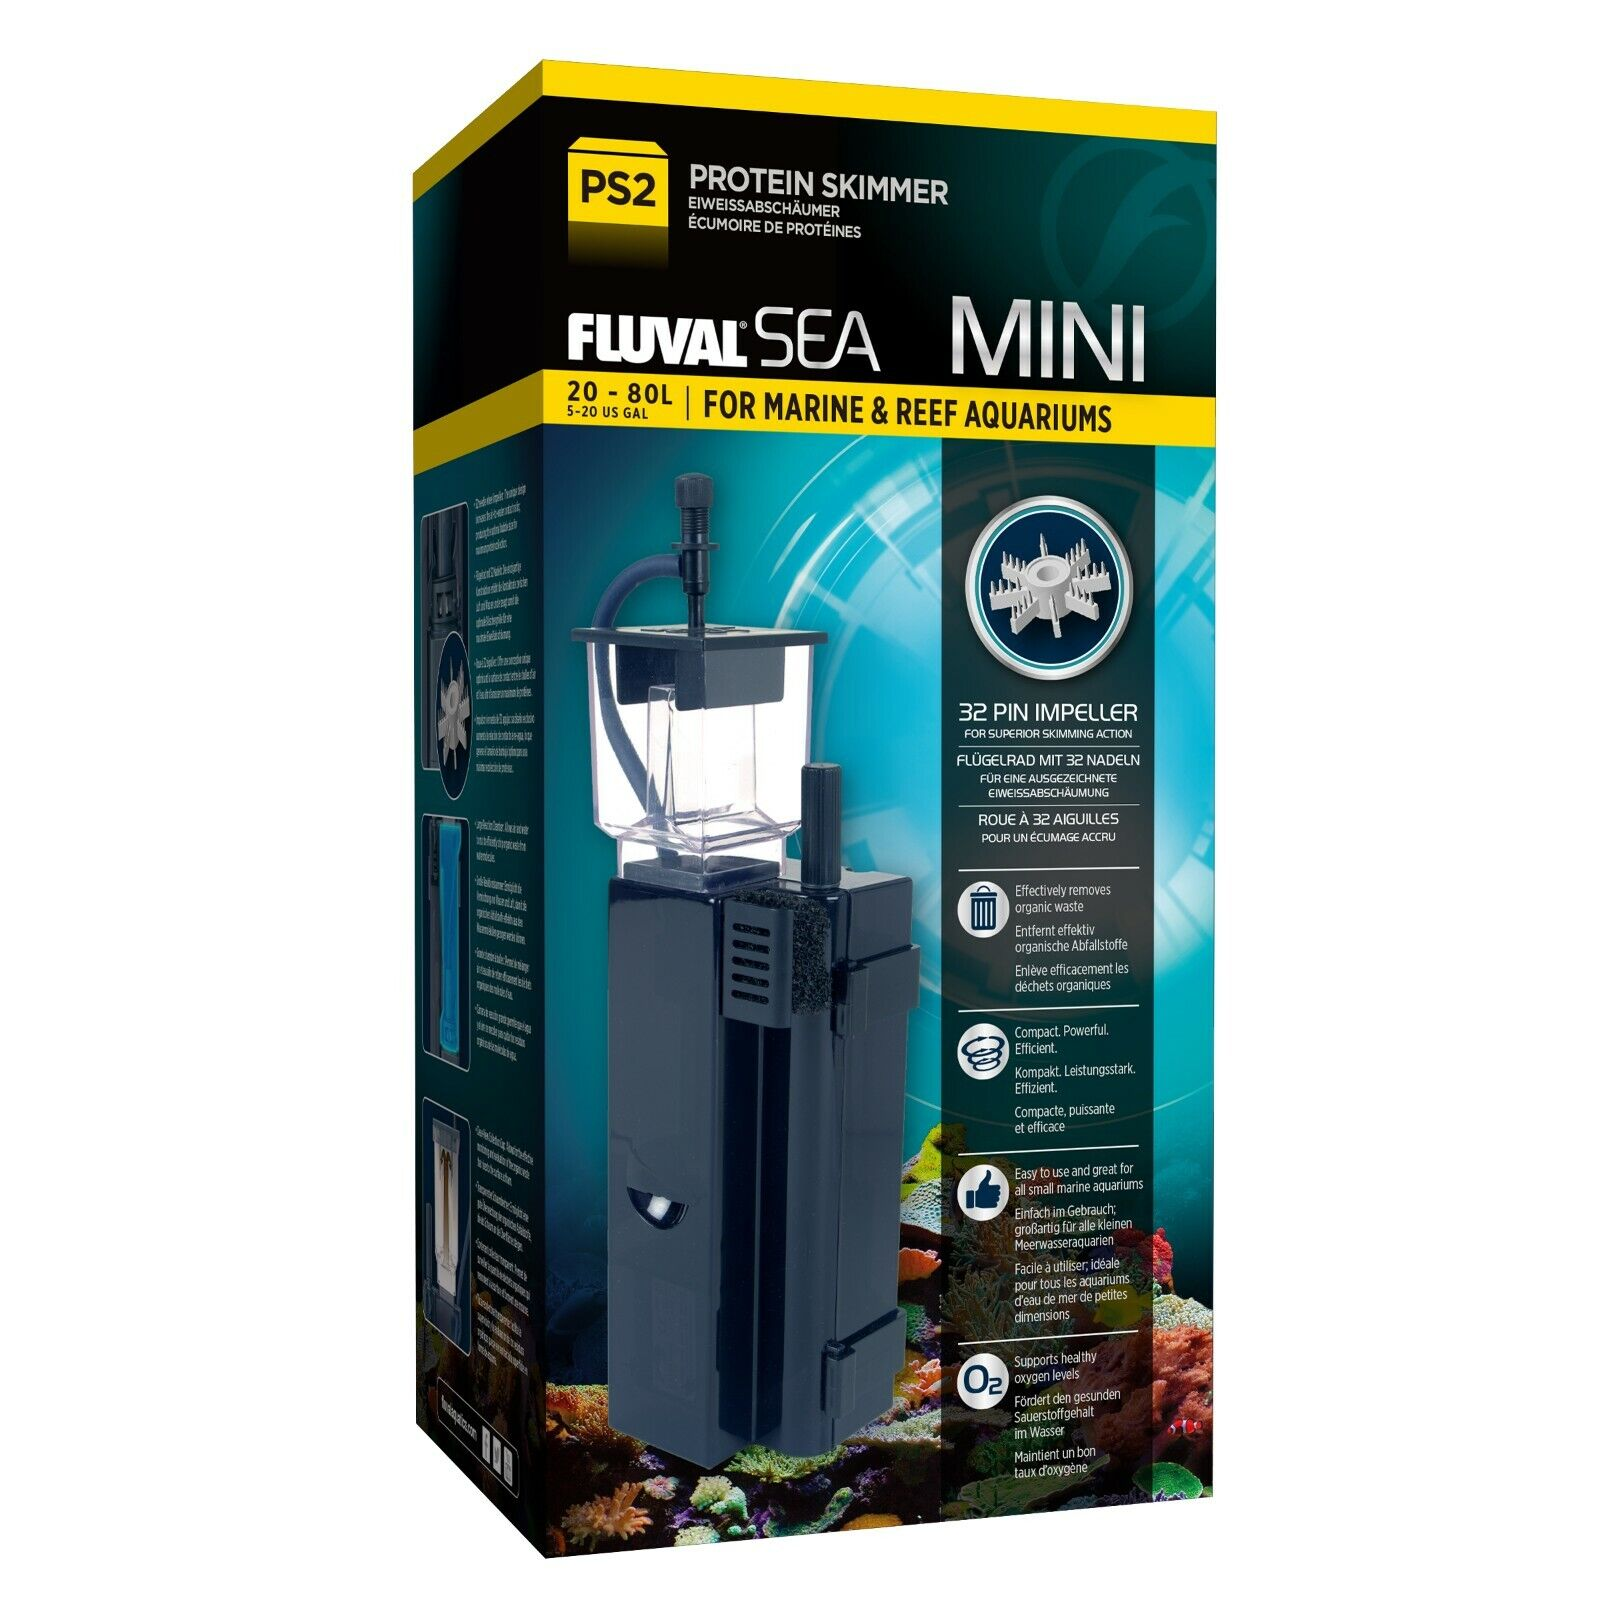 FLUVAL SEA PS2 MINI PROTEIN SKIMMER EVO - 5 to 20 GALLONS AQ